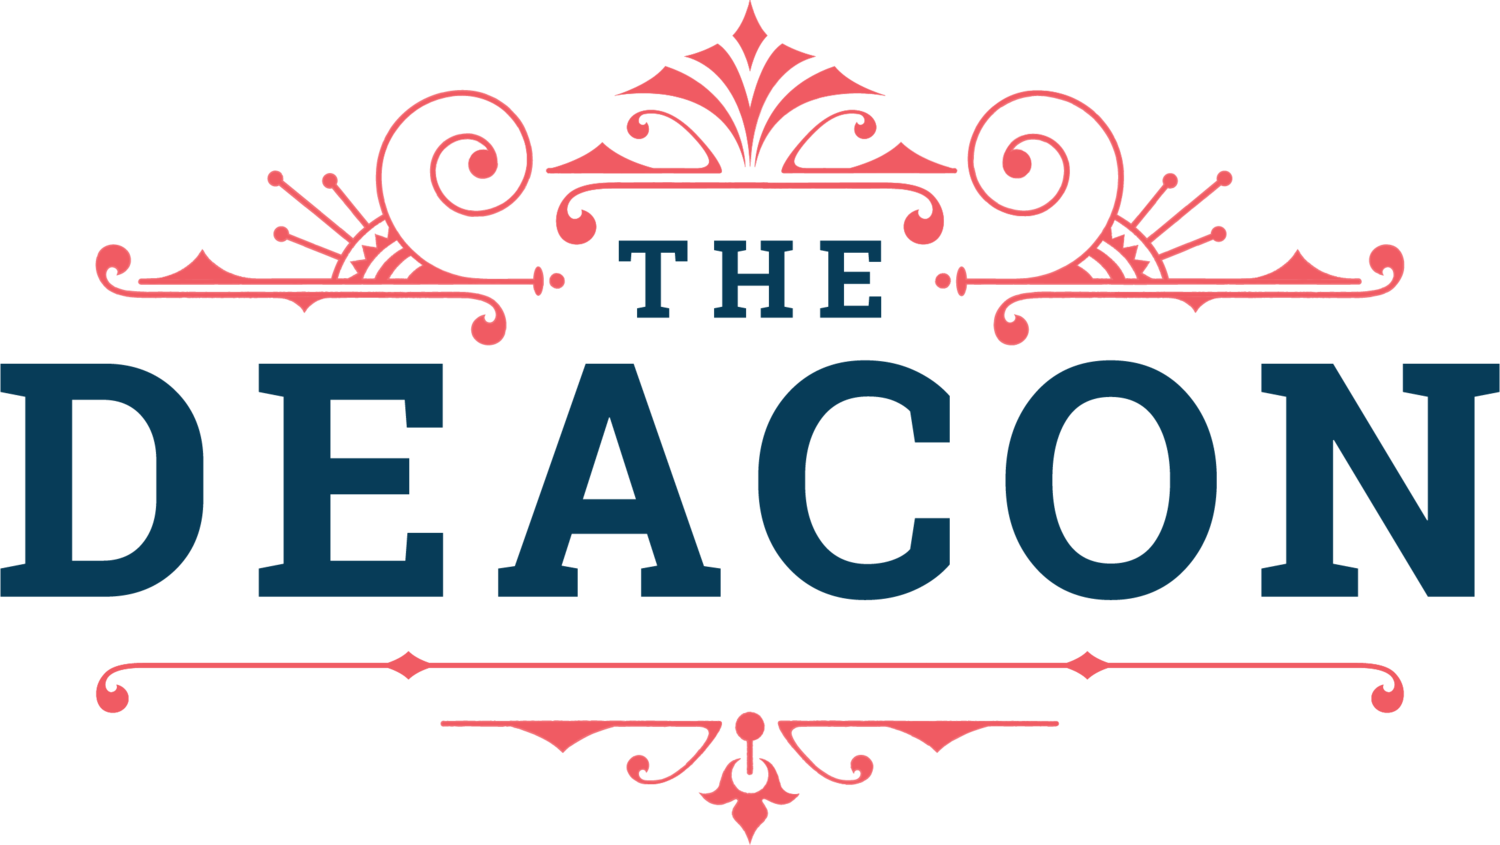 The Deacon | Timothy Pratt's Bed & Breakfast